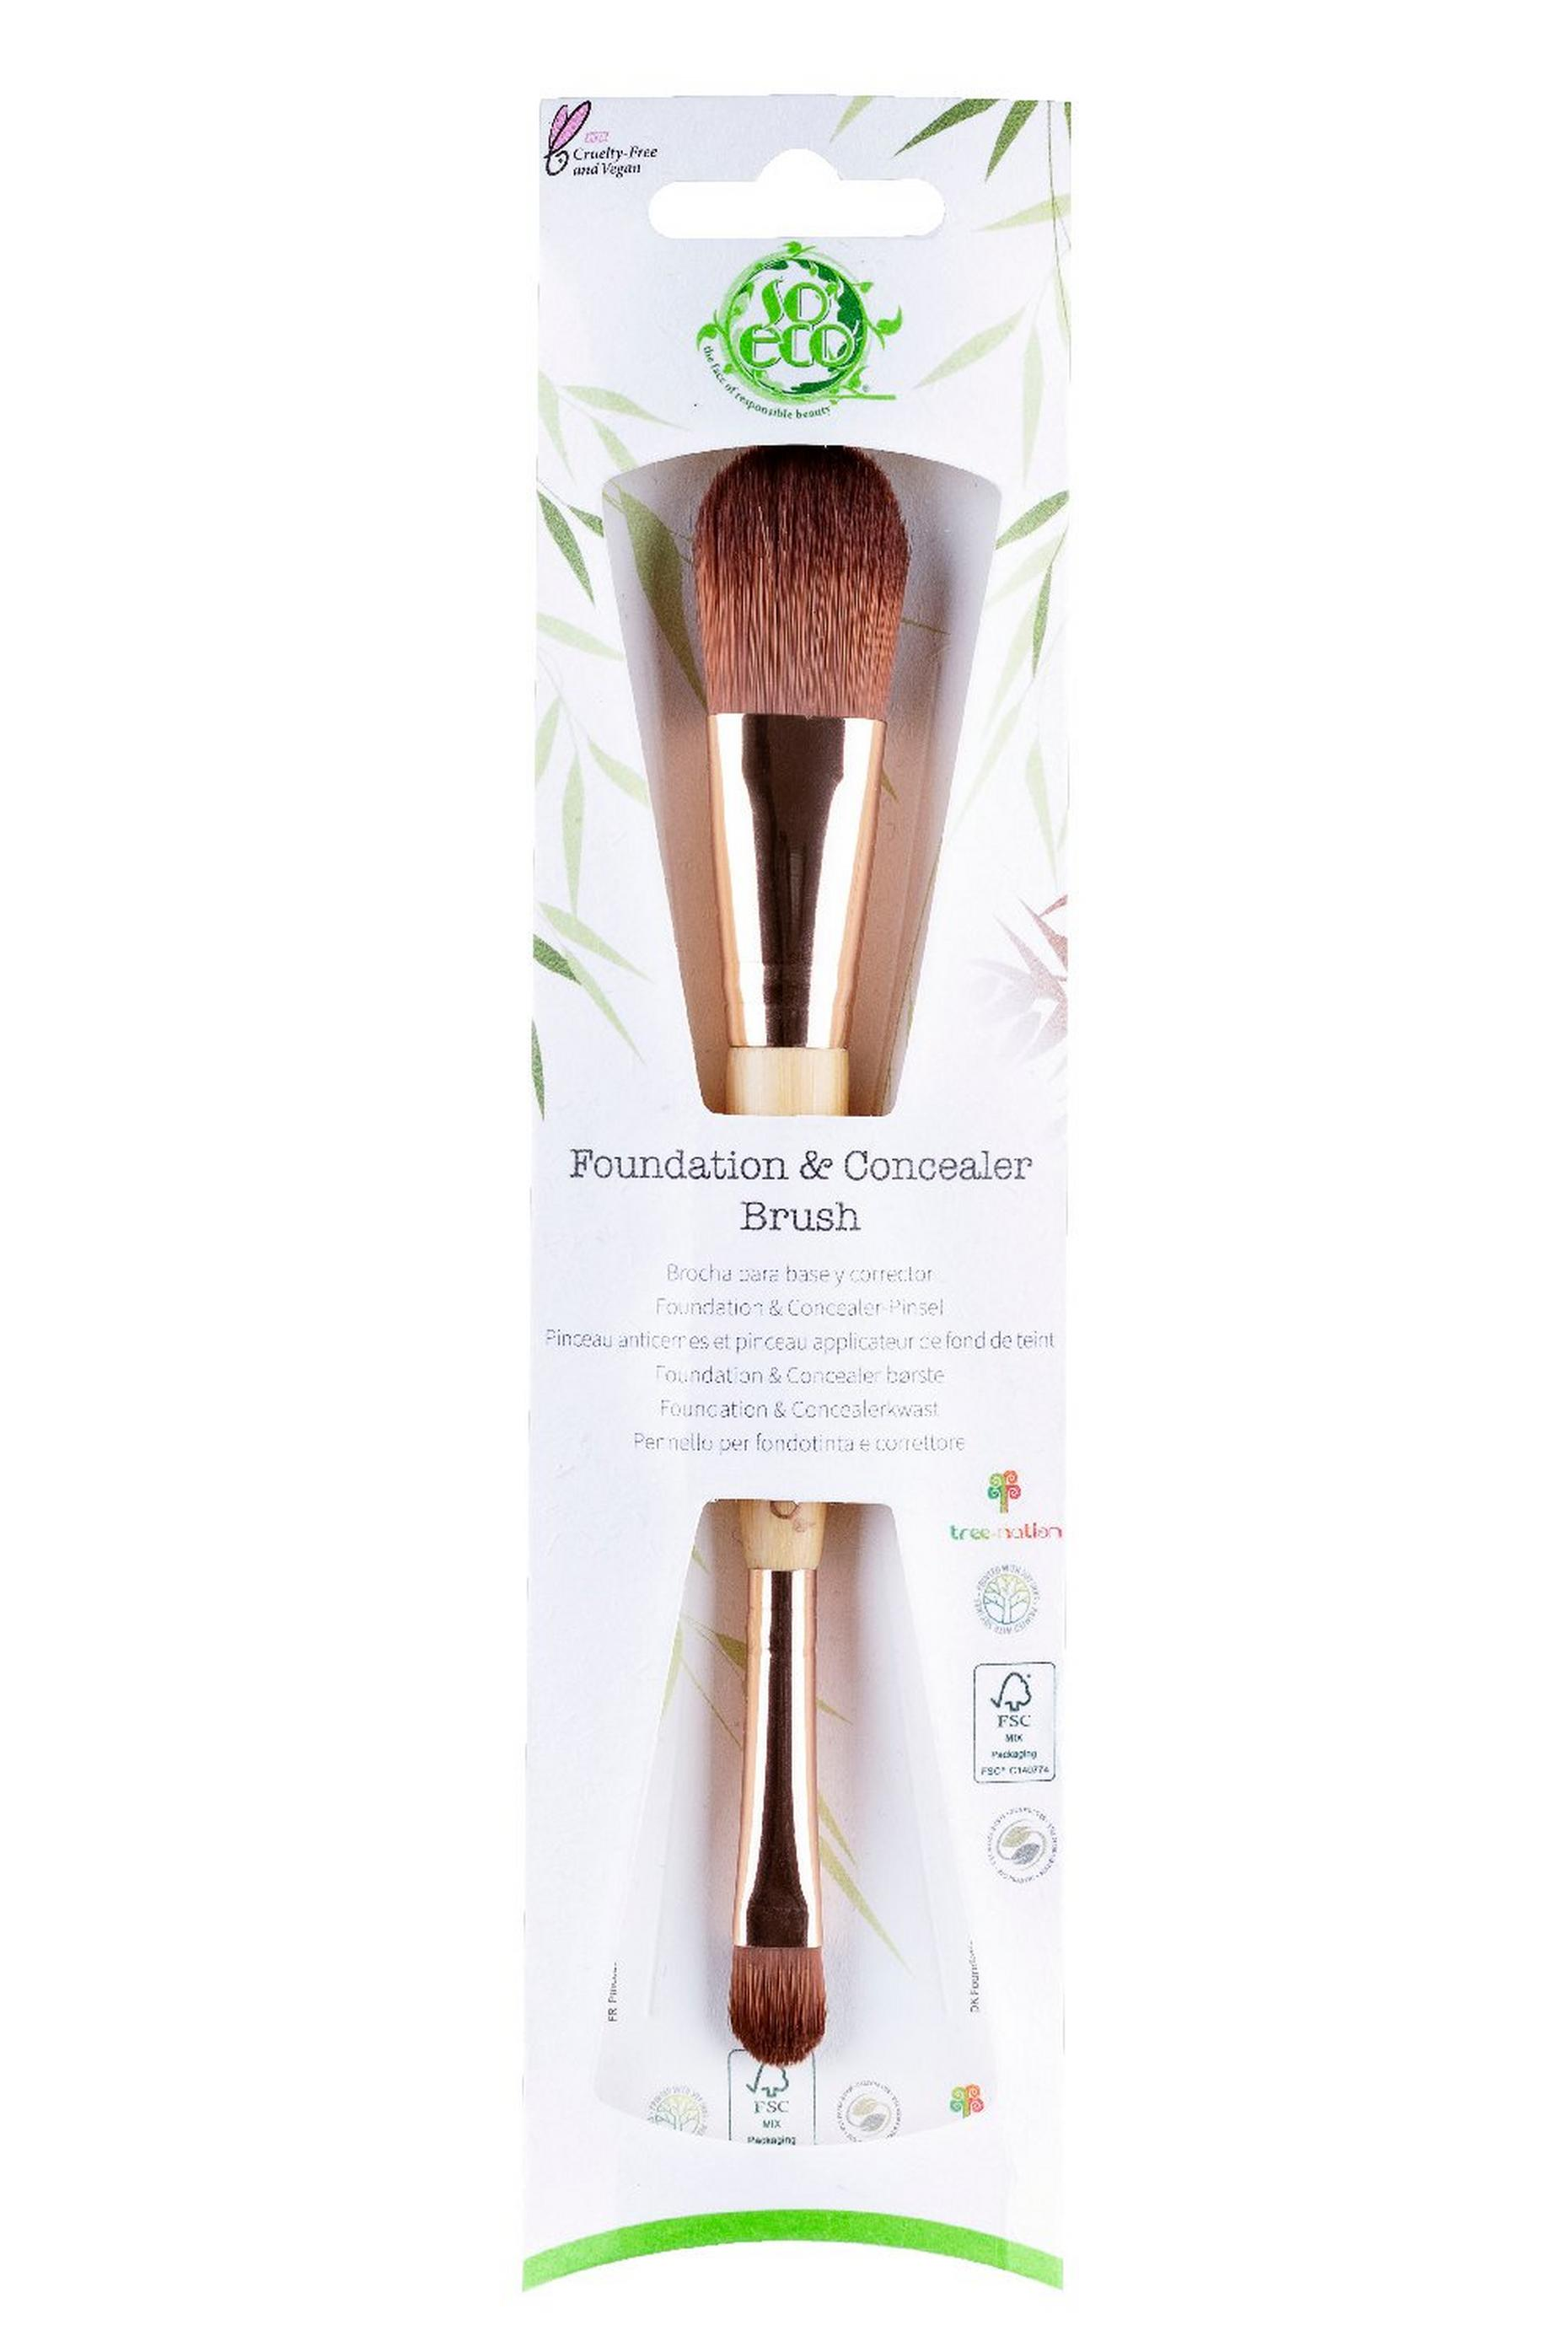 So Eco Foundation/Concealer Make Up Brush